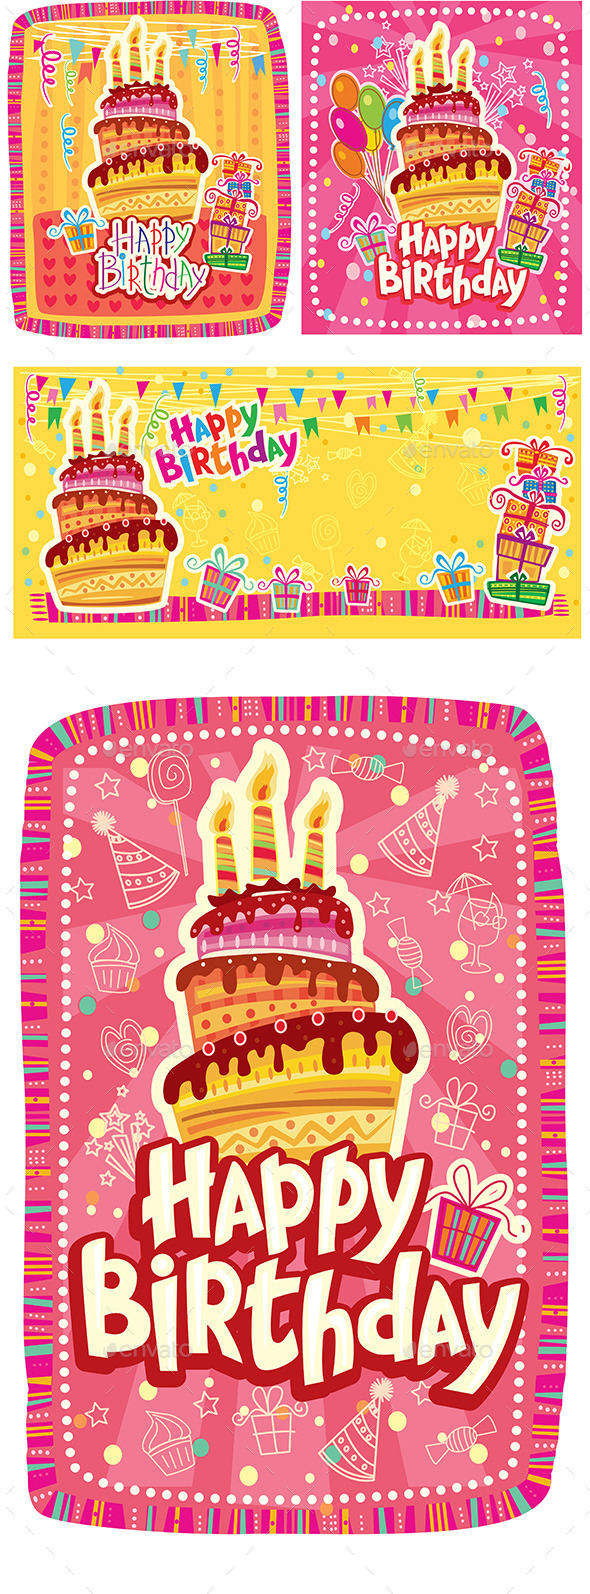 GraphicRiver Set of Happy Birthday Cards 10498365